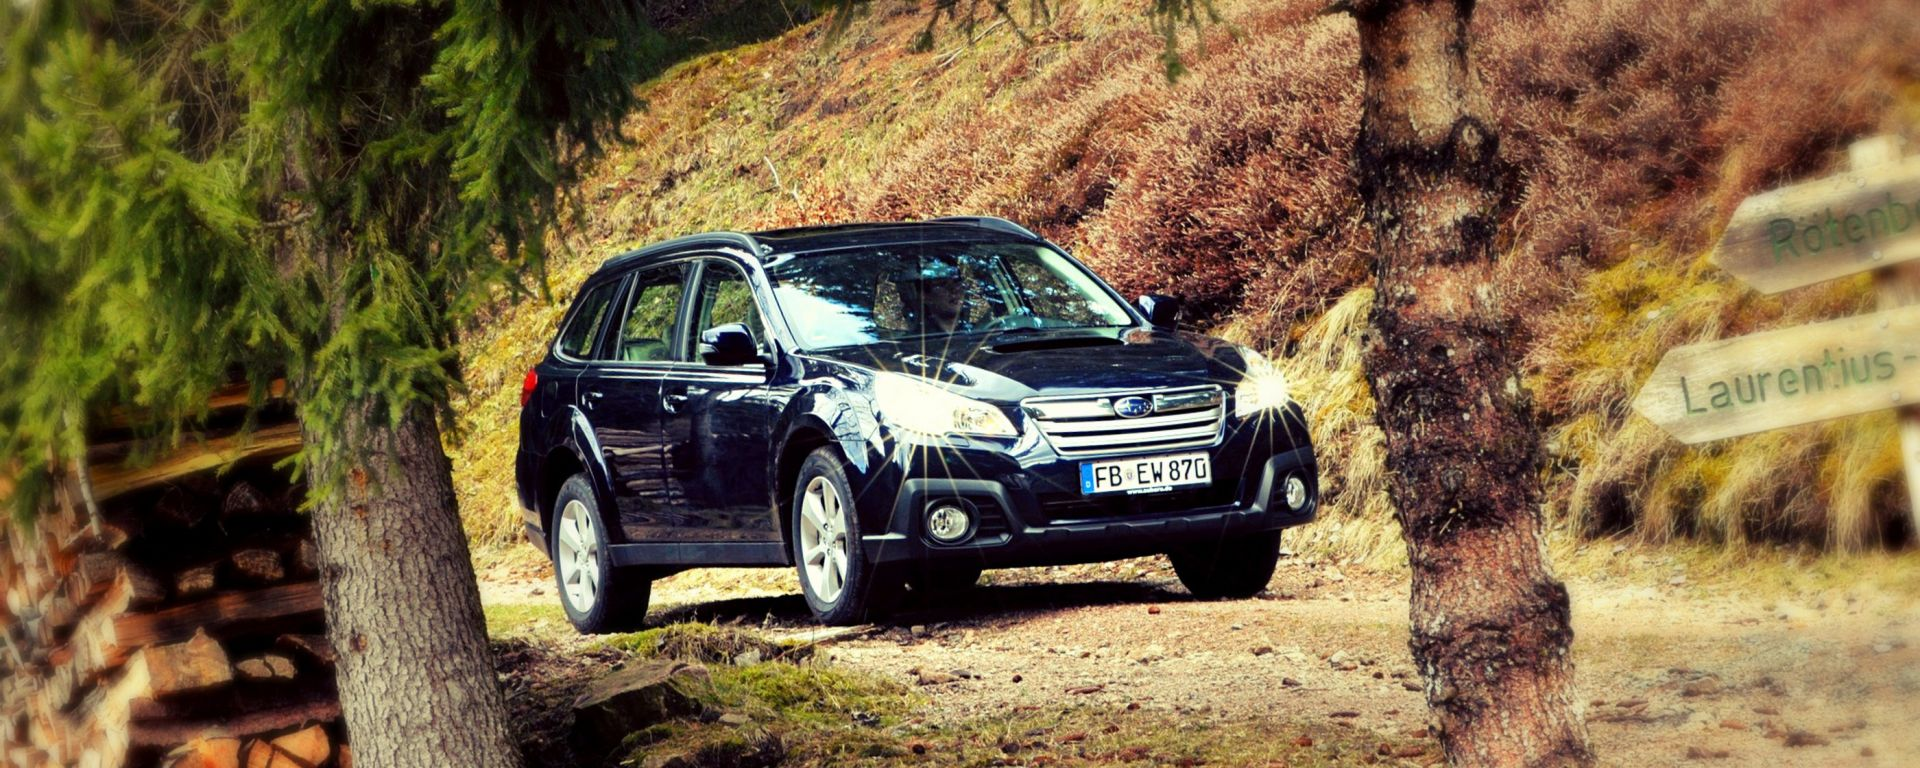 Subaru Outback Diesel Lineartronic 2014